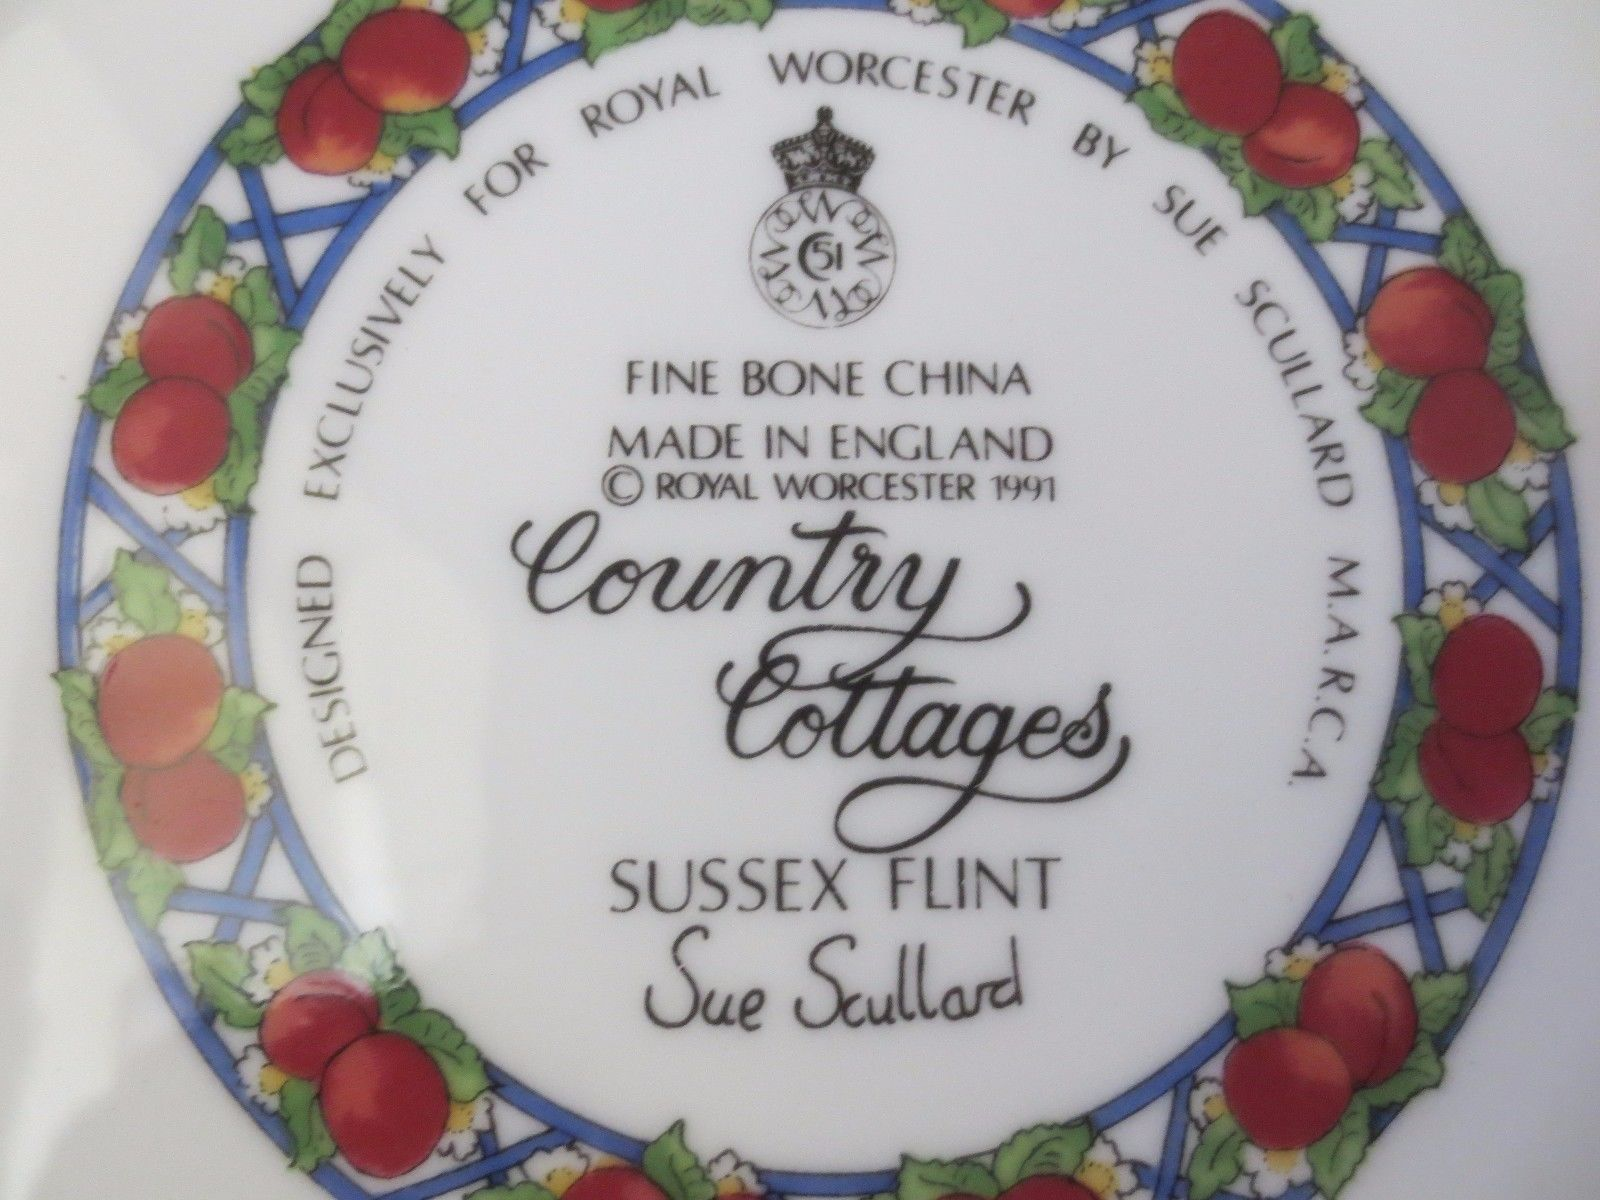 Royal Worcester 'Country Cottages' Collective Plate by Sue Scullard Sussex Flint